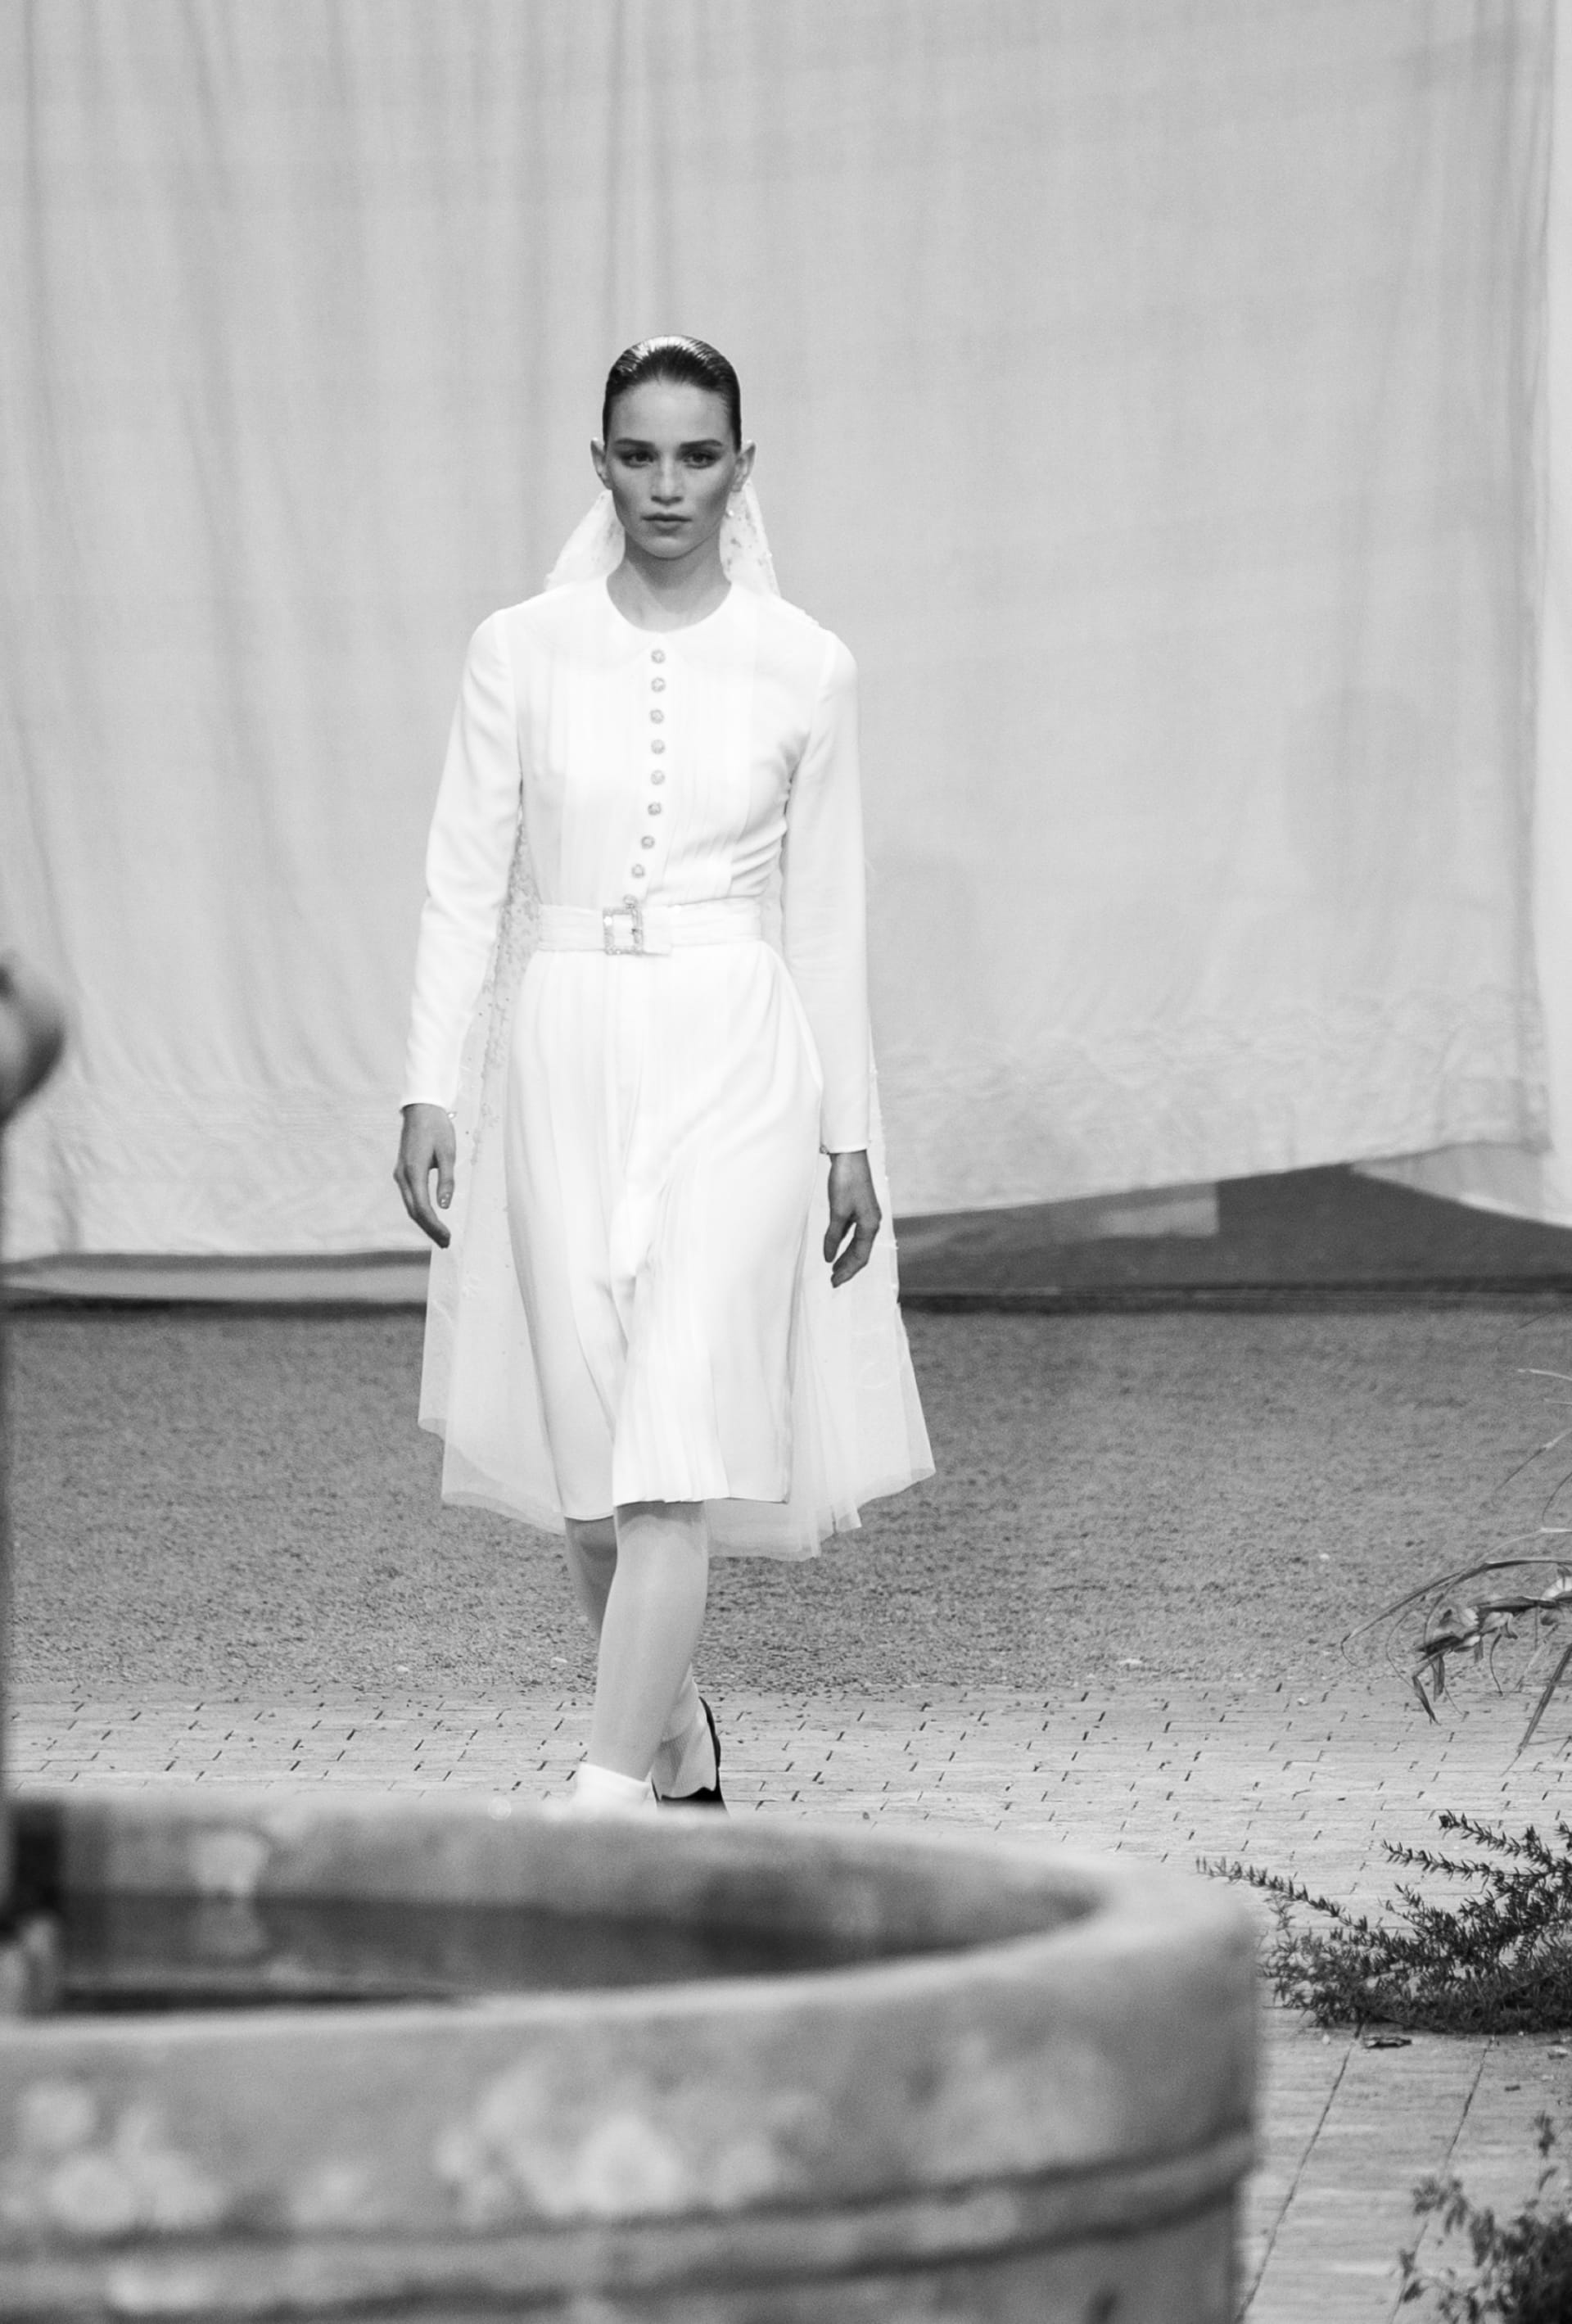 View 4 - Look 62 - Spring-Summer 2020 Haute Couture - see full sized version